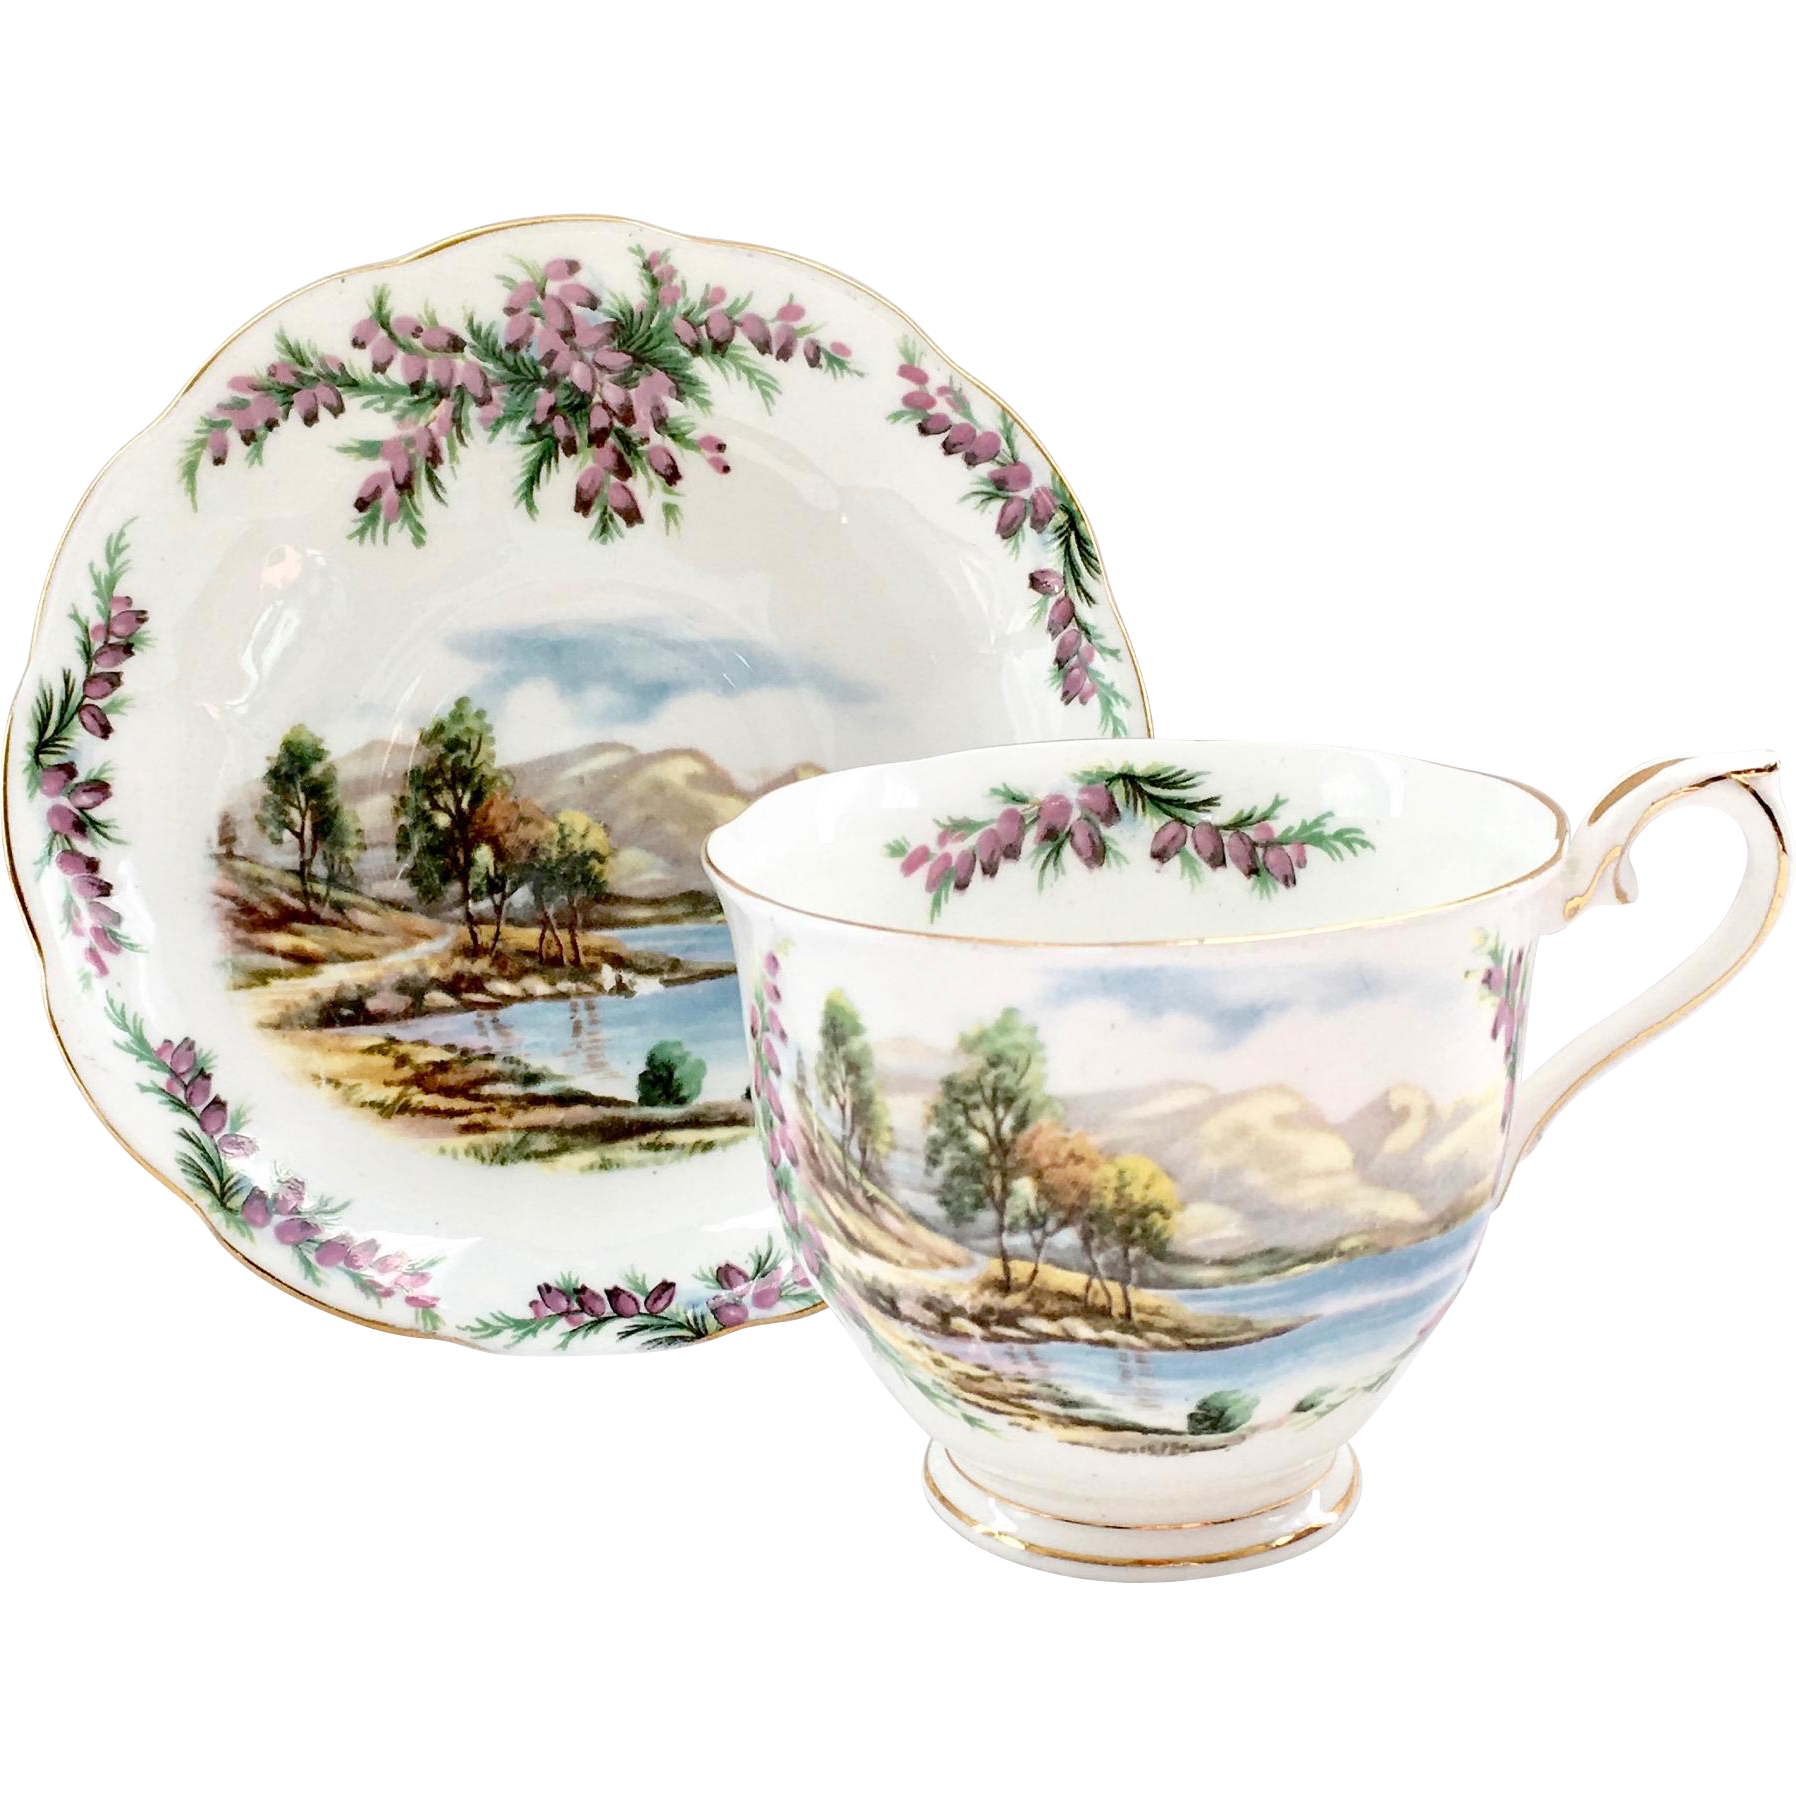 royal albert bone china traditional british songs series road to the isles scenic teacup and saucer